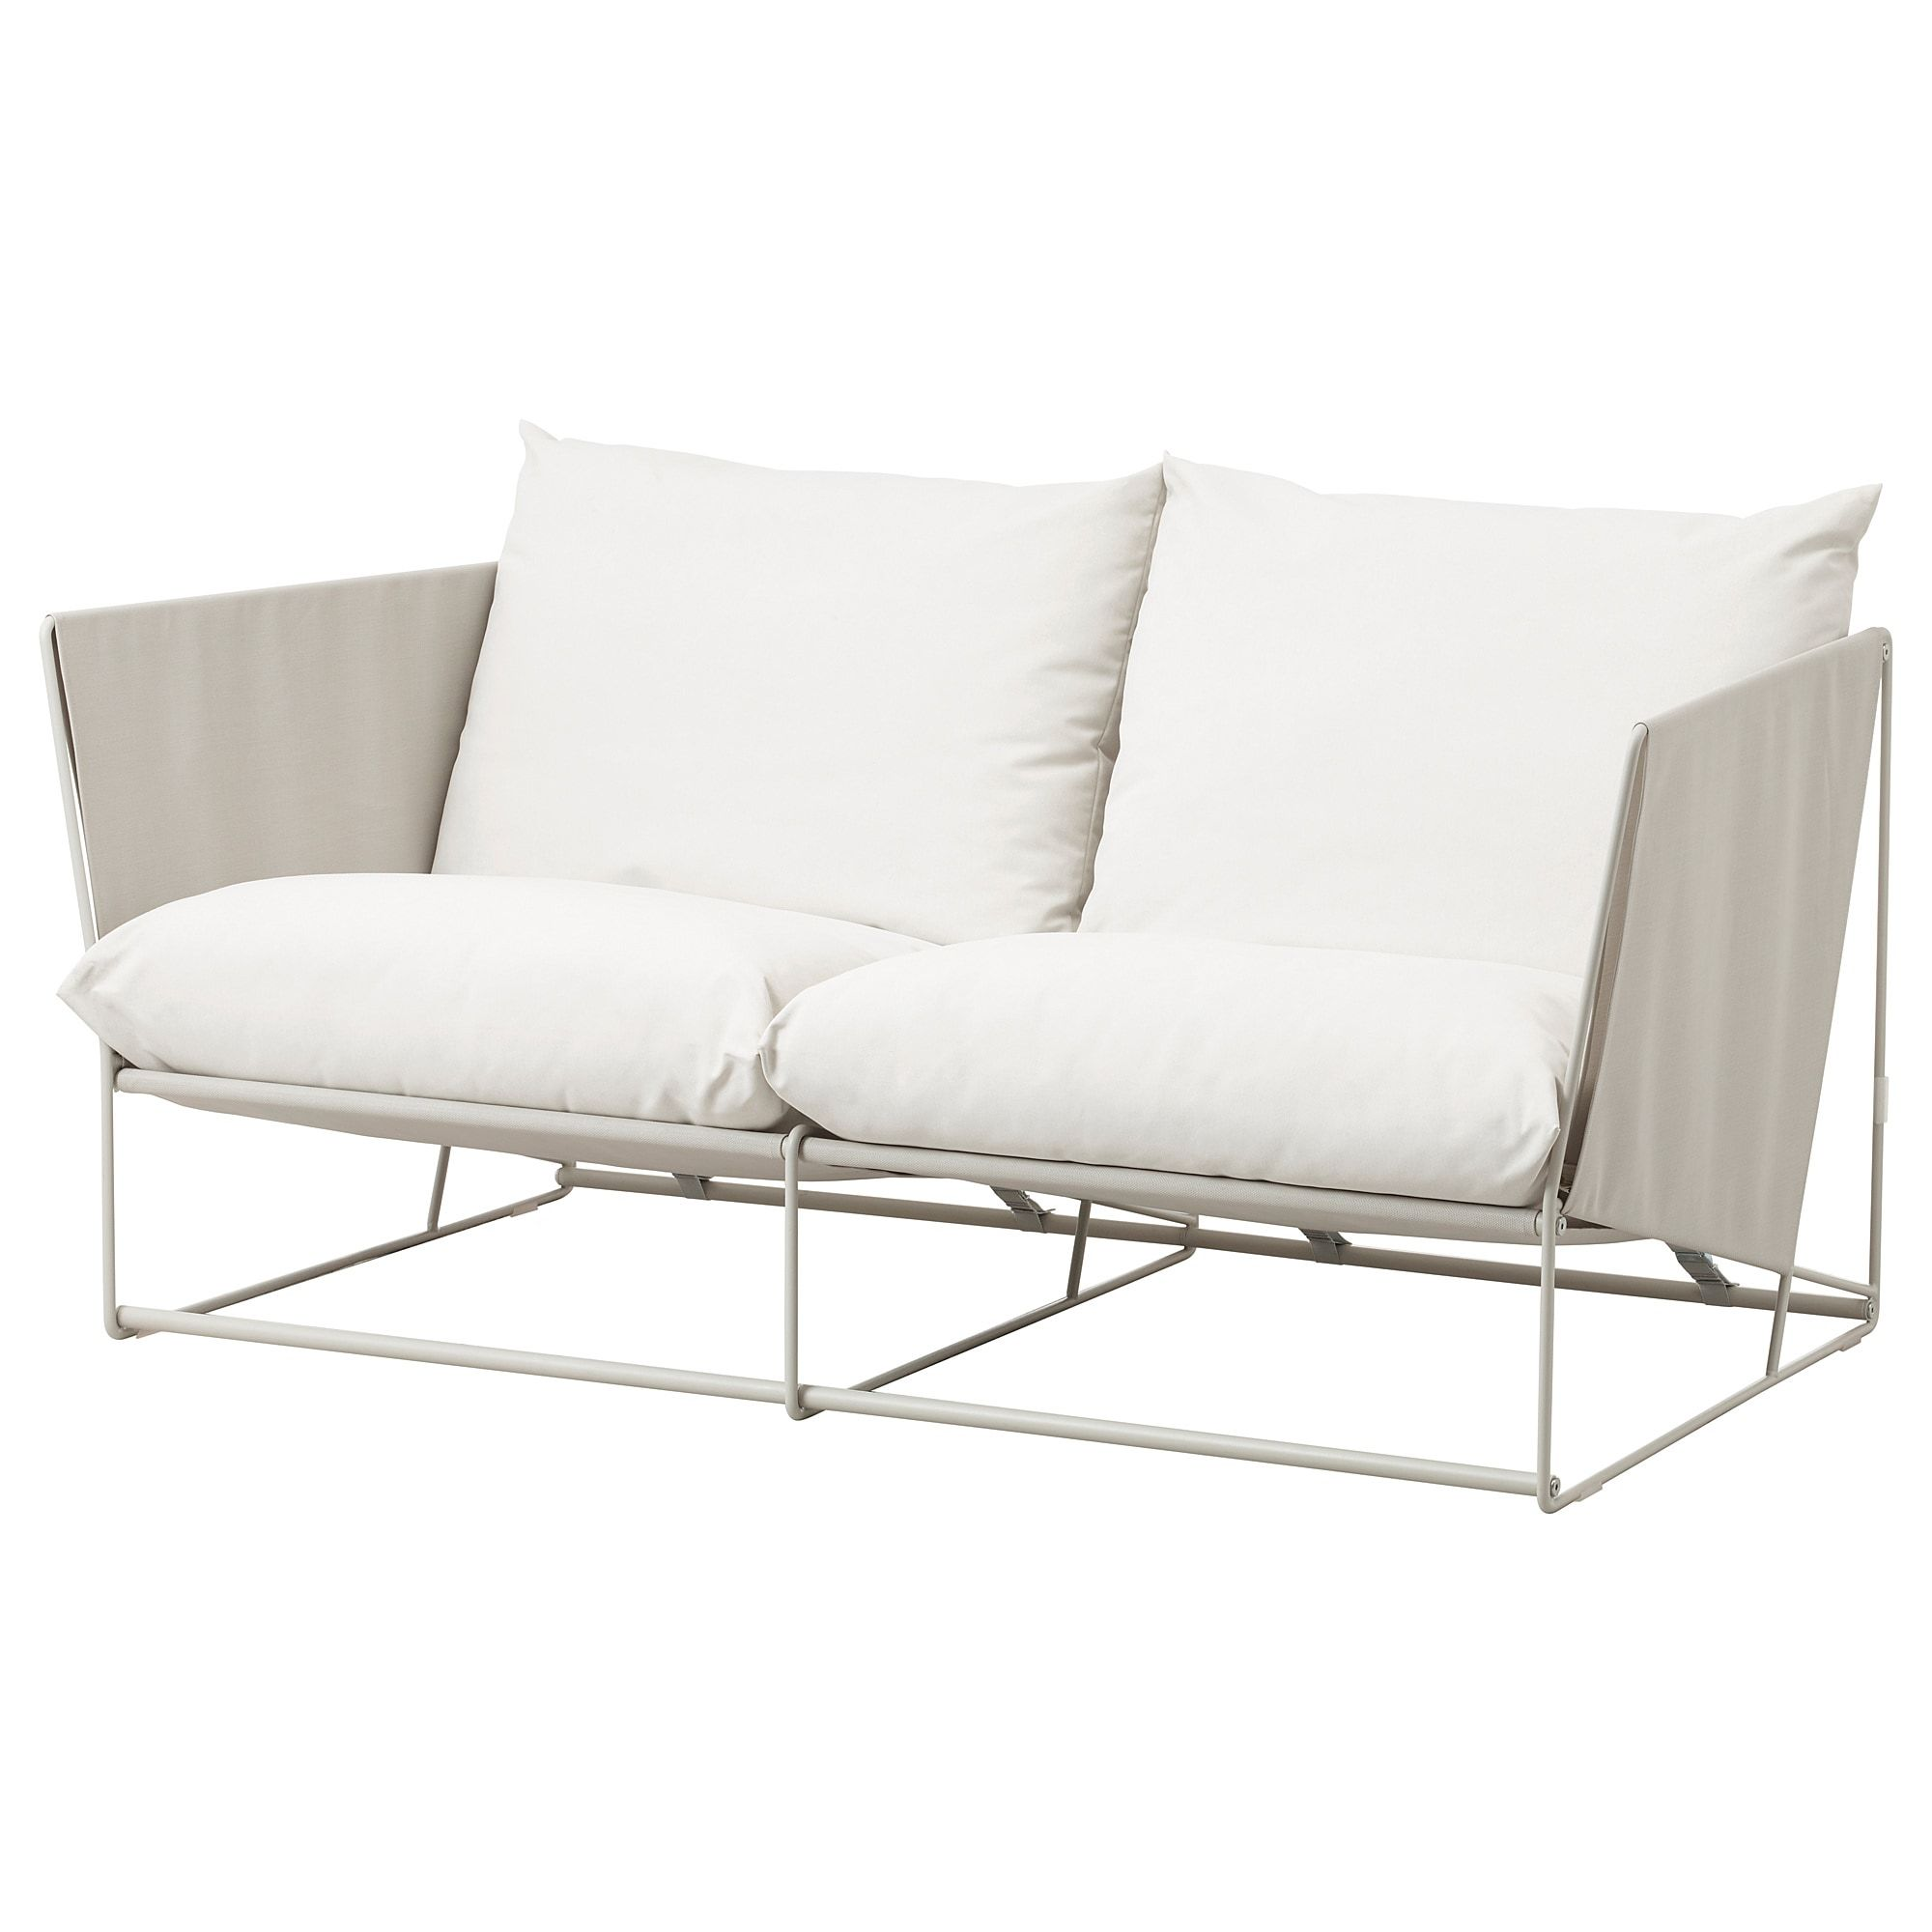 Havsten 2 Sits Soffa Inom Utomhus Beige Ikea Affordable Sofa Affordable Outdoor Furniture Love Seat